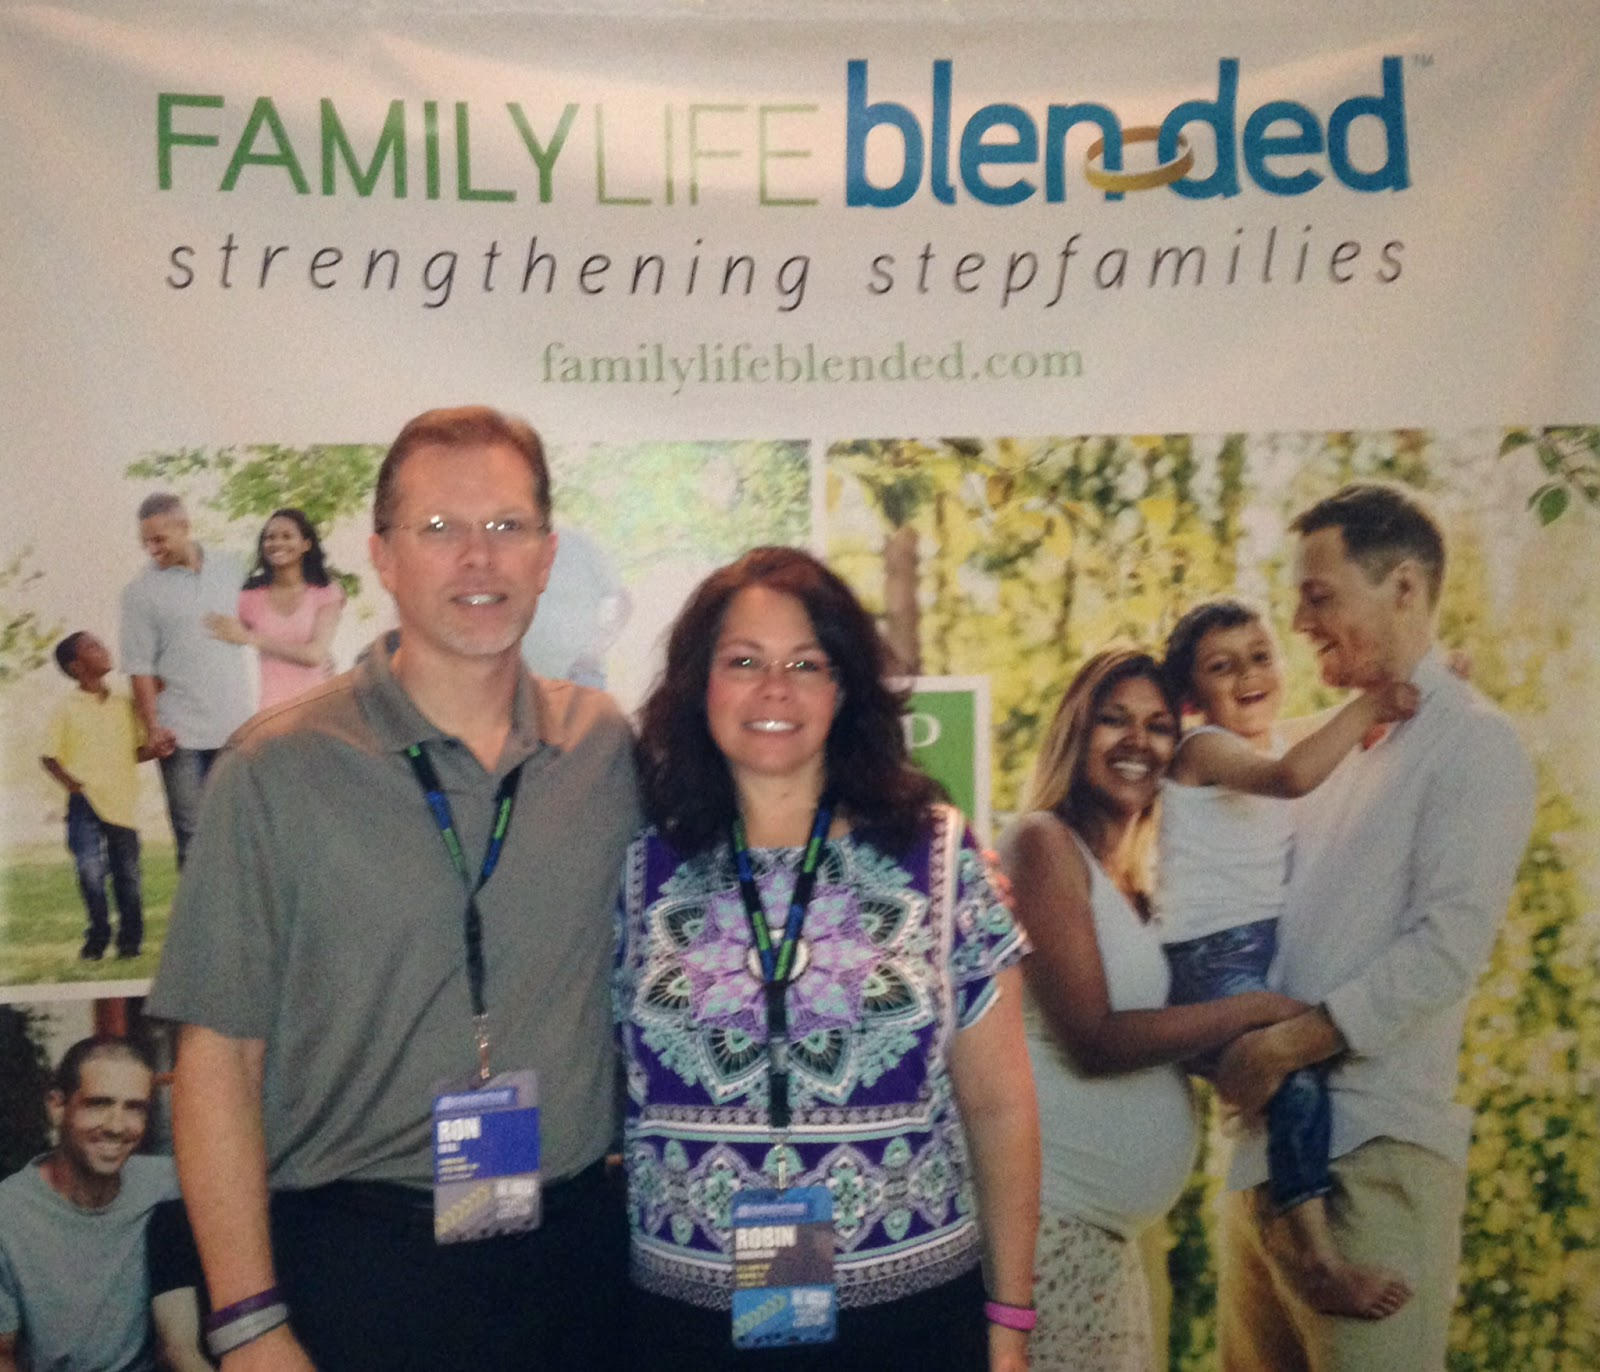 """blended essay family step Blended families research paper these children may require therapy to help adapt to their new family dynamics """"living in step blended families essay."""